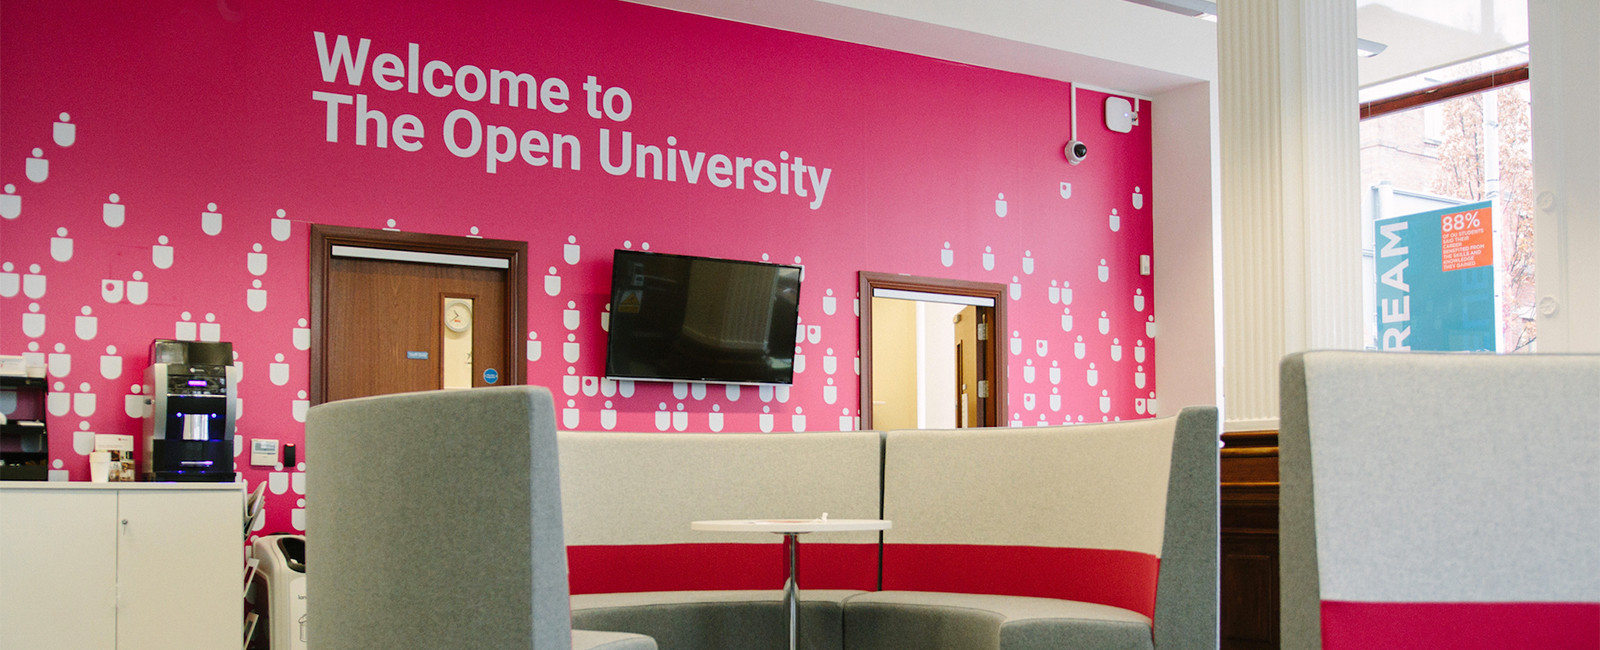 Open University: Event management and film production